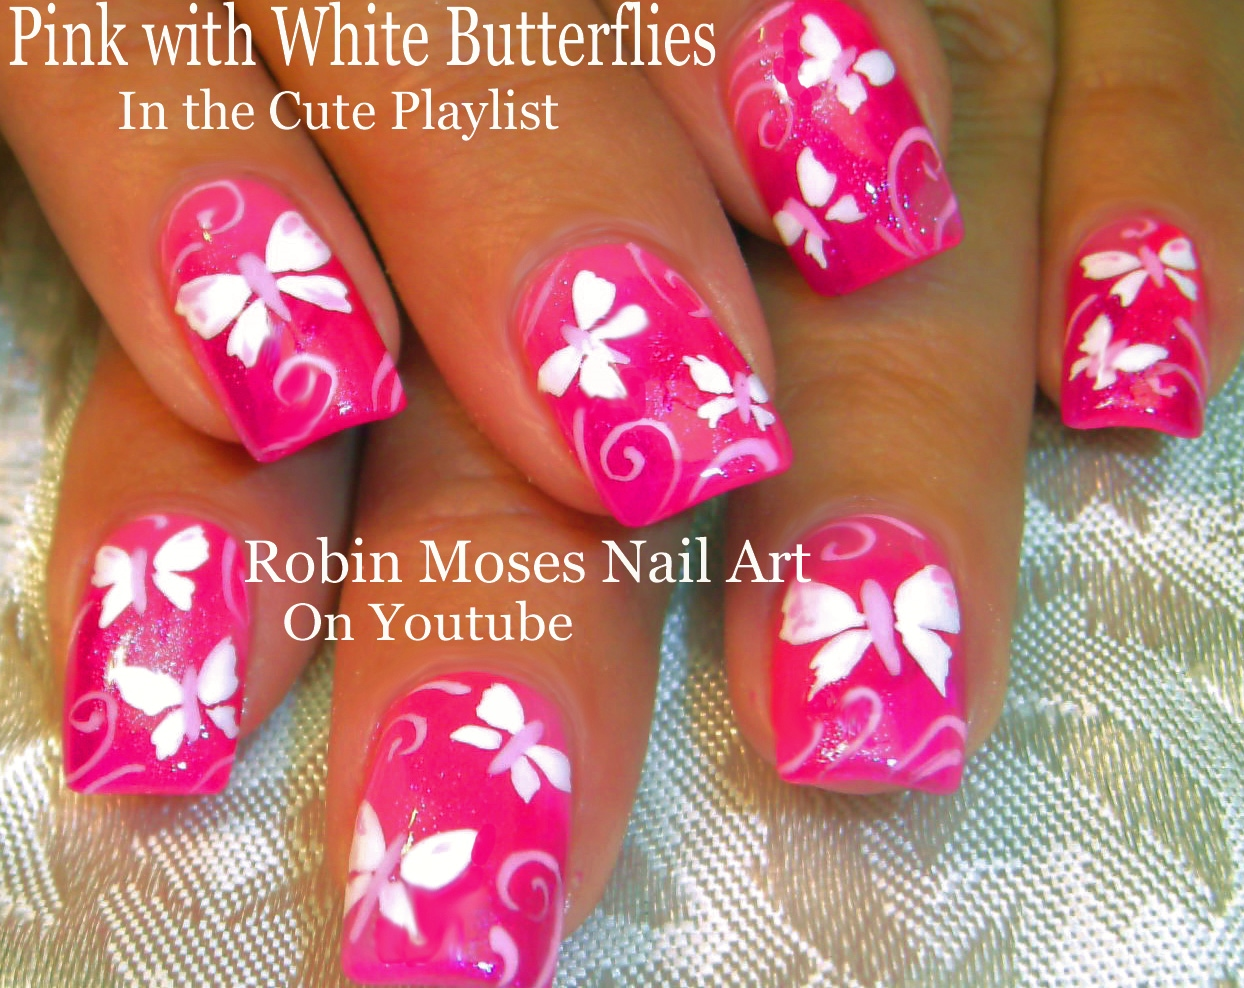 Robin moses nail art neon pink with white butterfly nail art neon pink with white butterfly nail art design tutorial up today prettyinpink prinsesfo Image collections